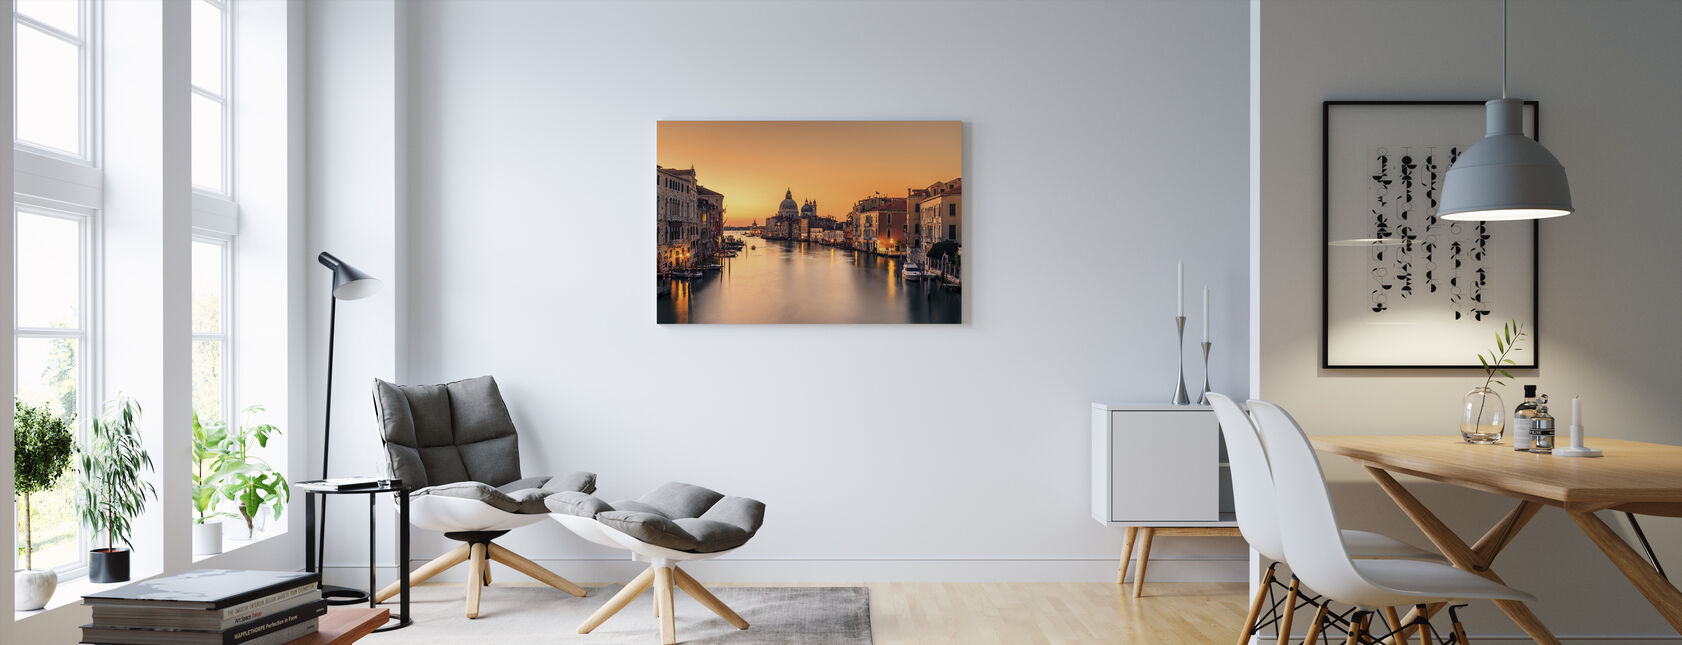 Dawn on Venice - Canvas print - Living Room